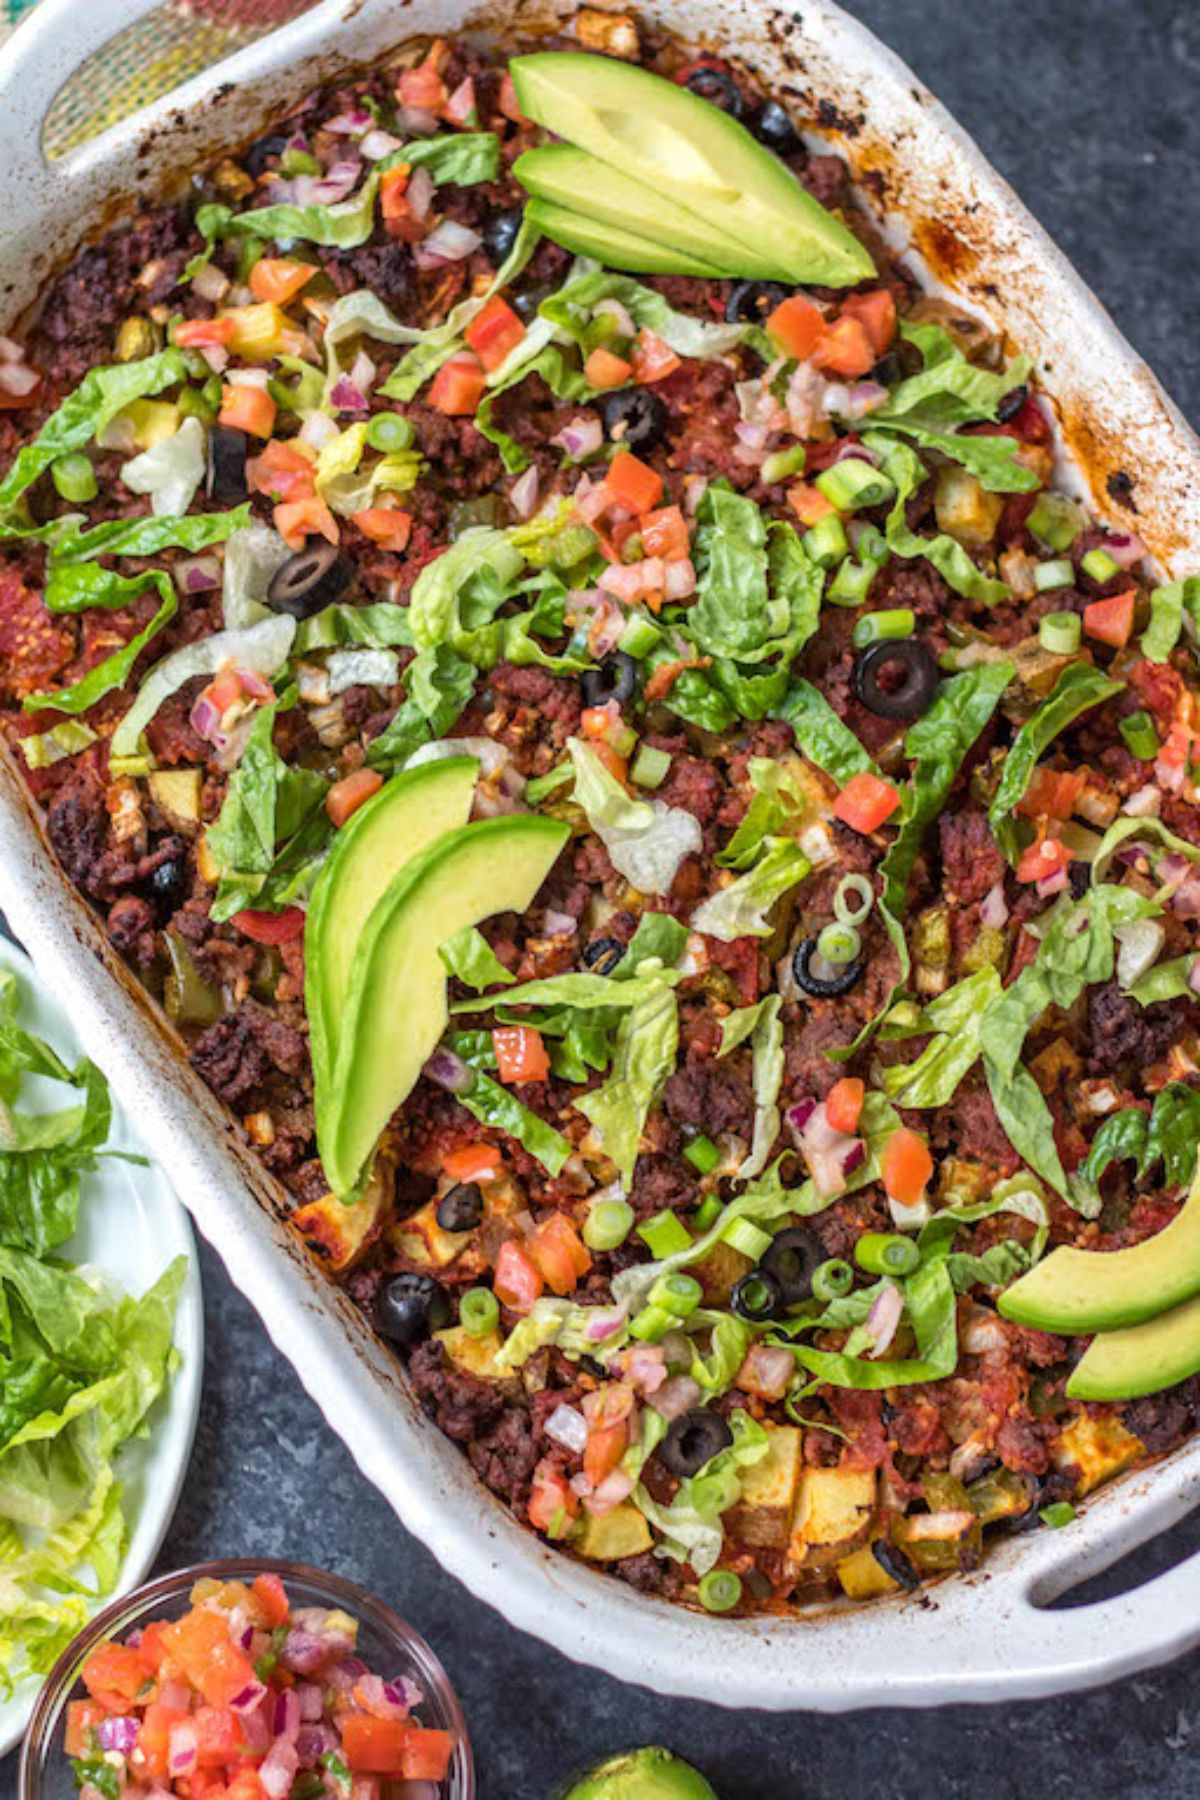 An oven dish full of beef casserole topped with avocado, lettuce, scalions and olives